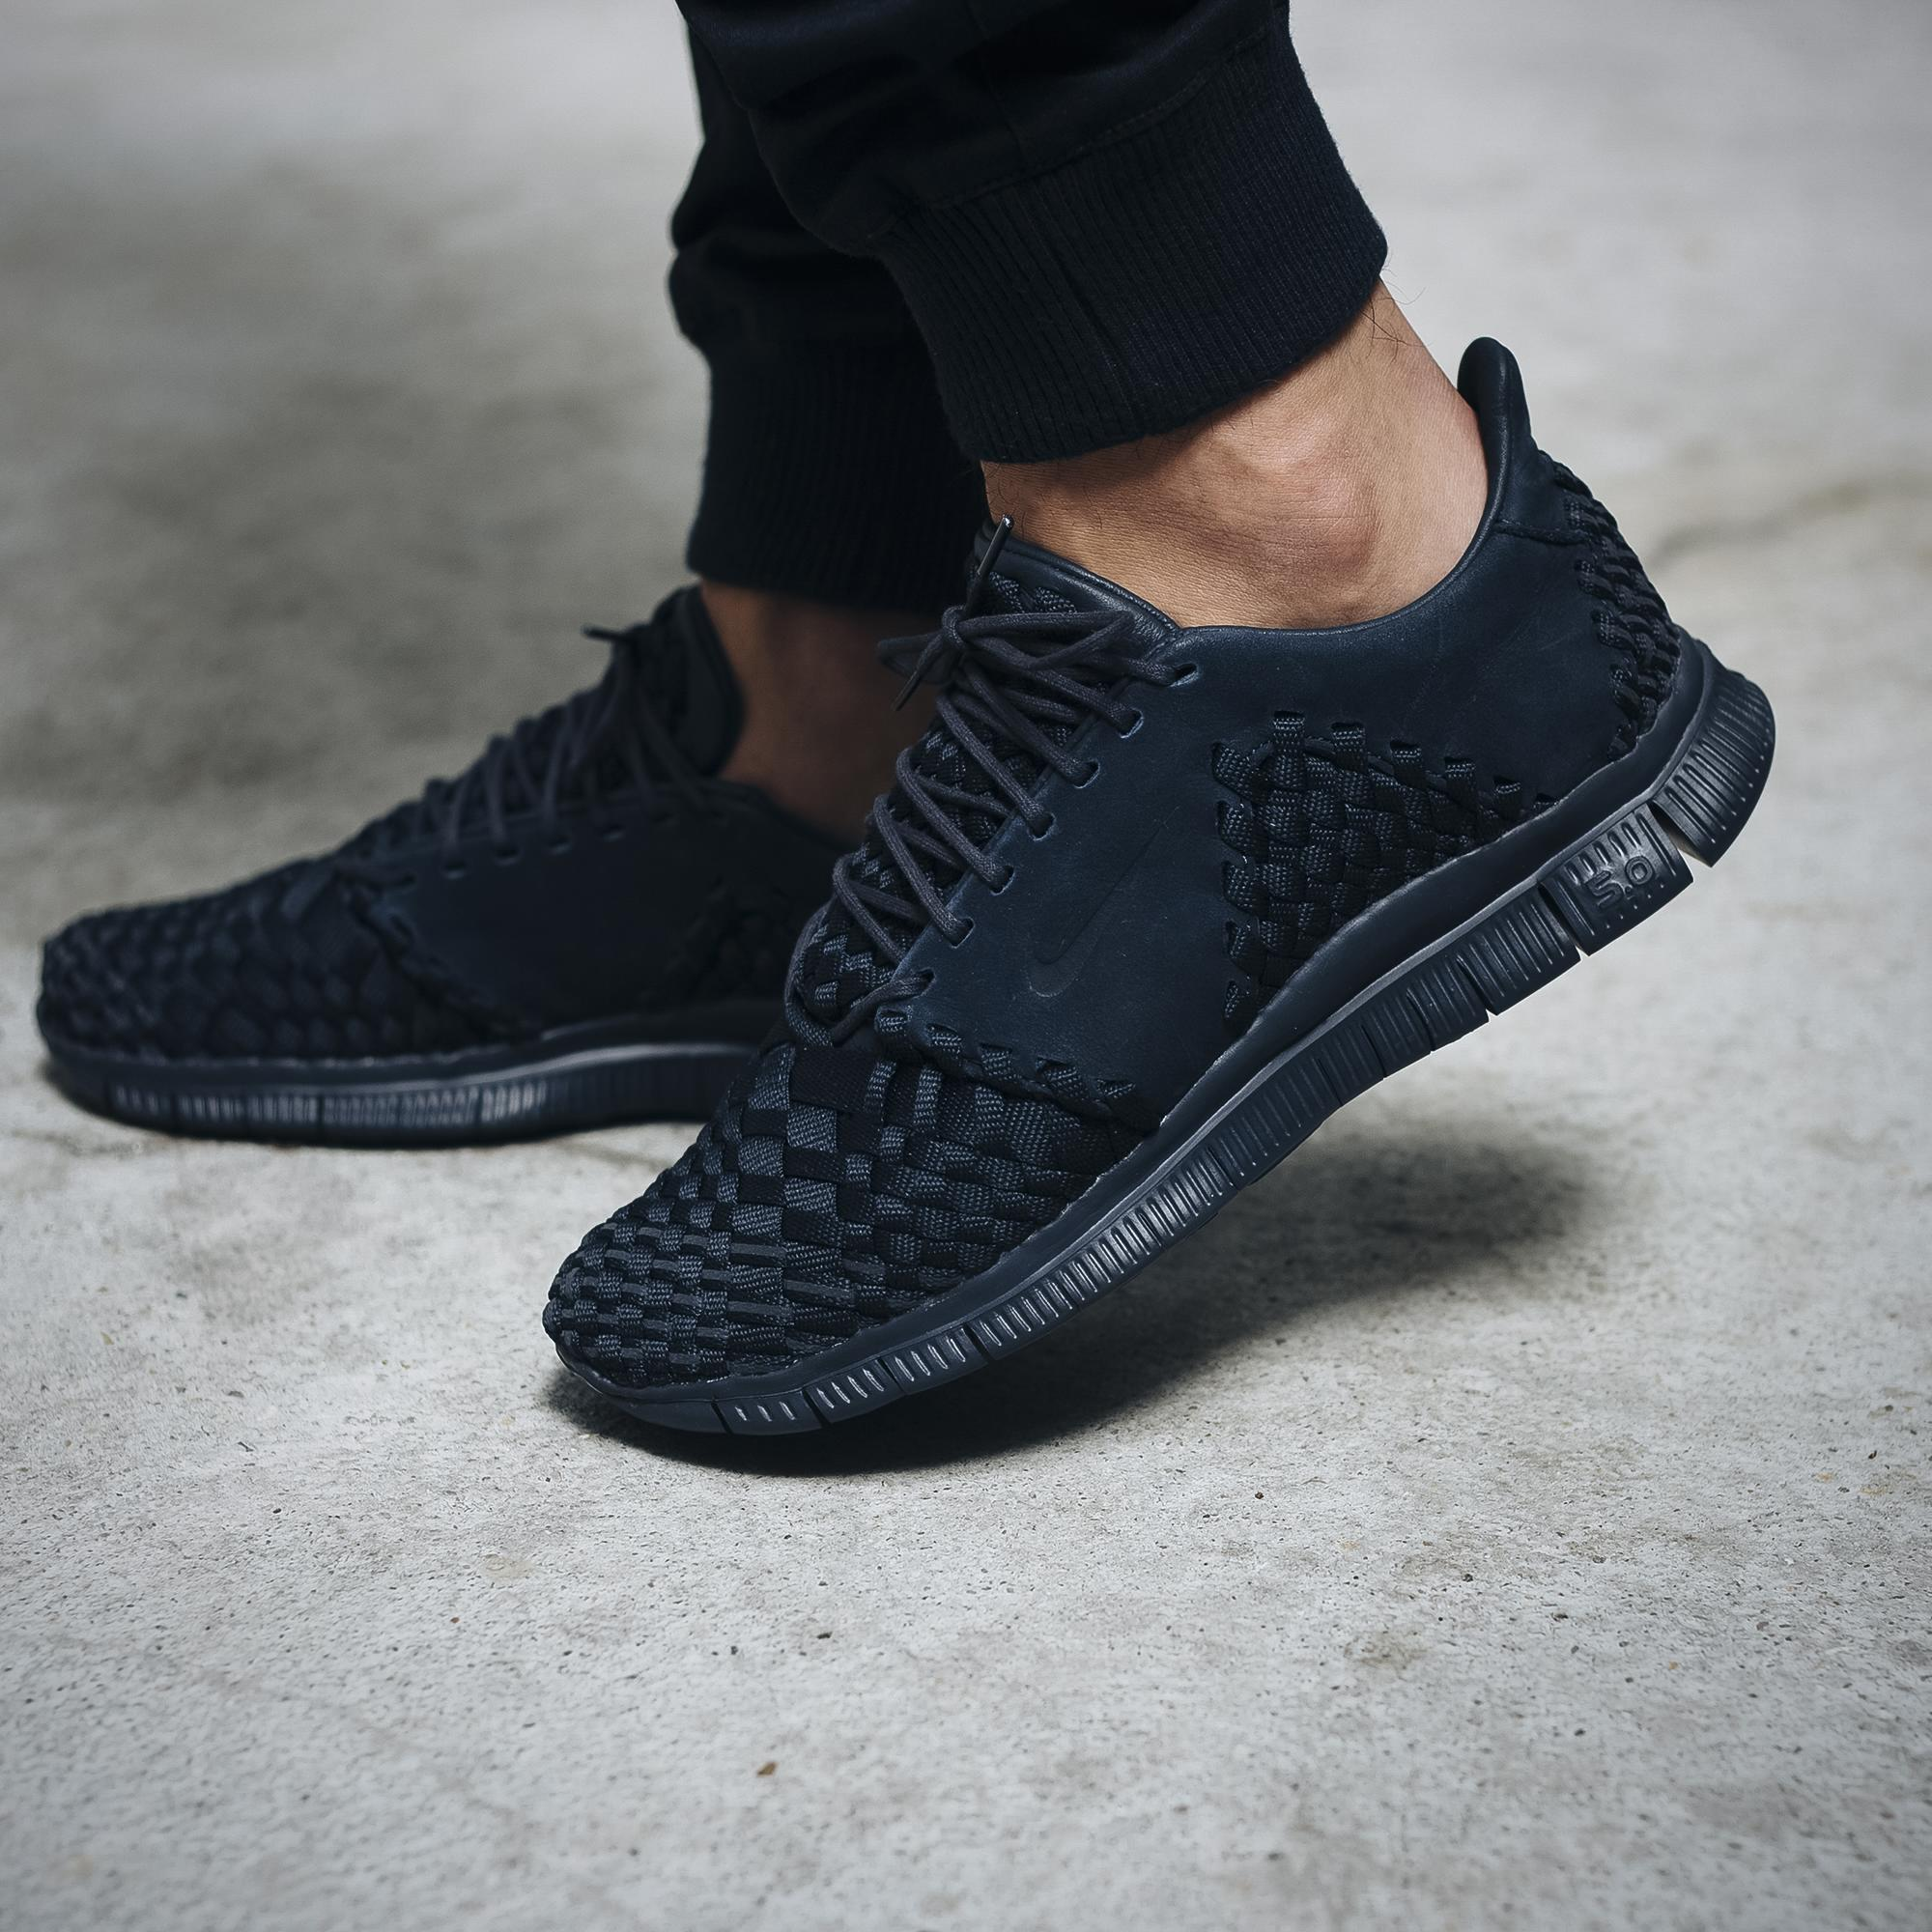 promo code b730b bac40 The Nike Free Inneva Woven 2 Obsidian Is Now Available For Purchase